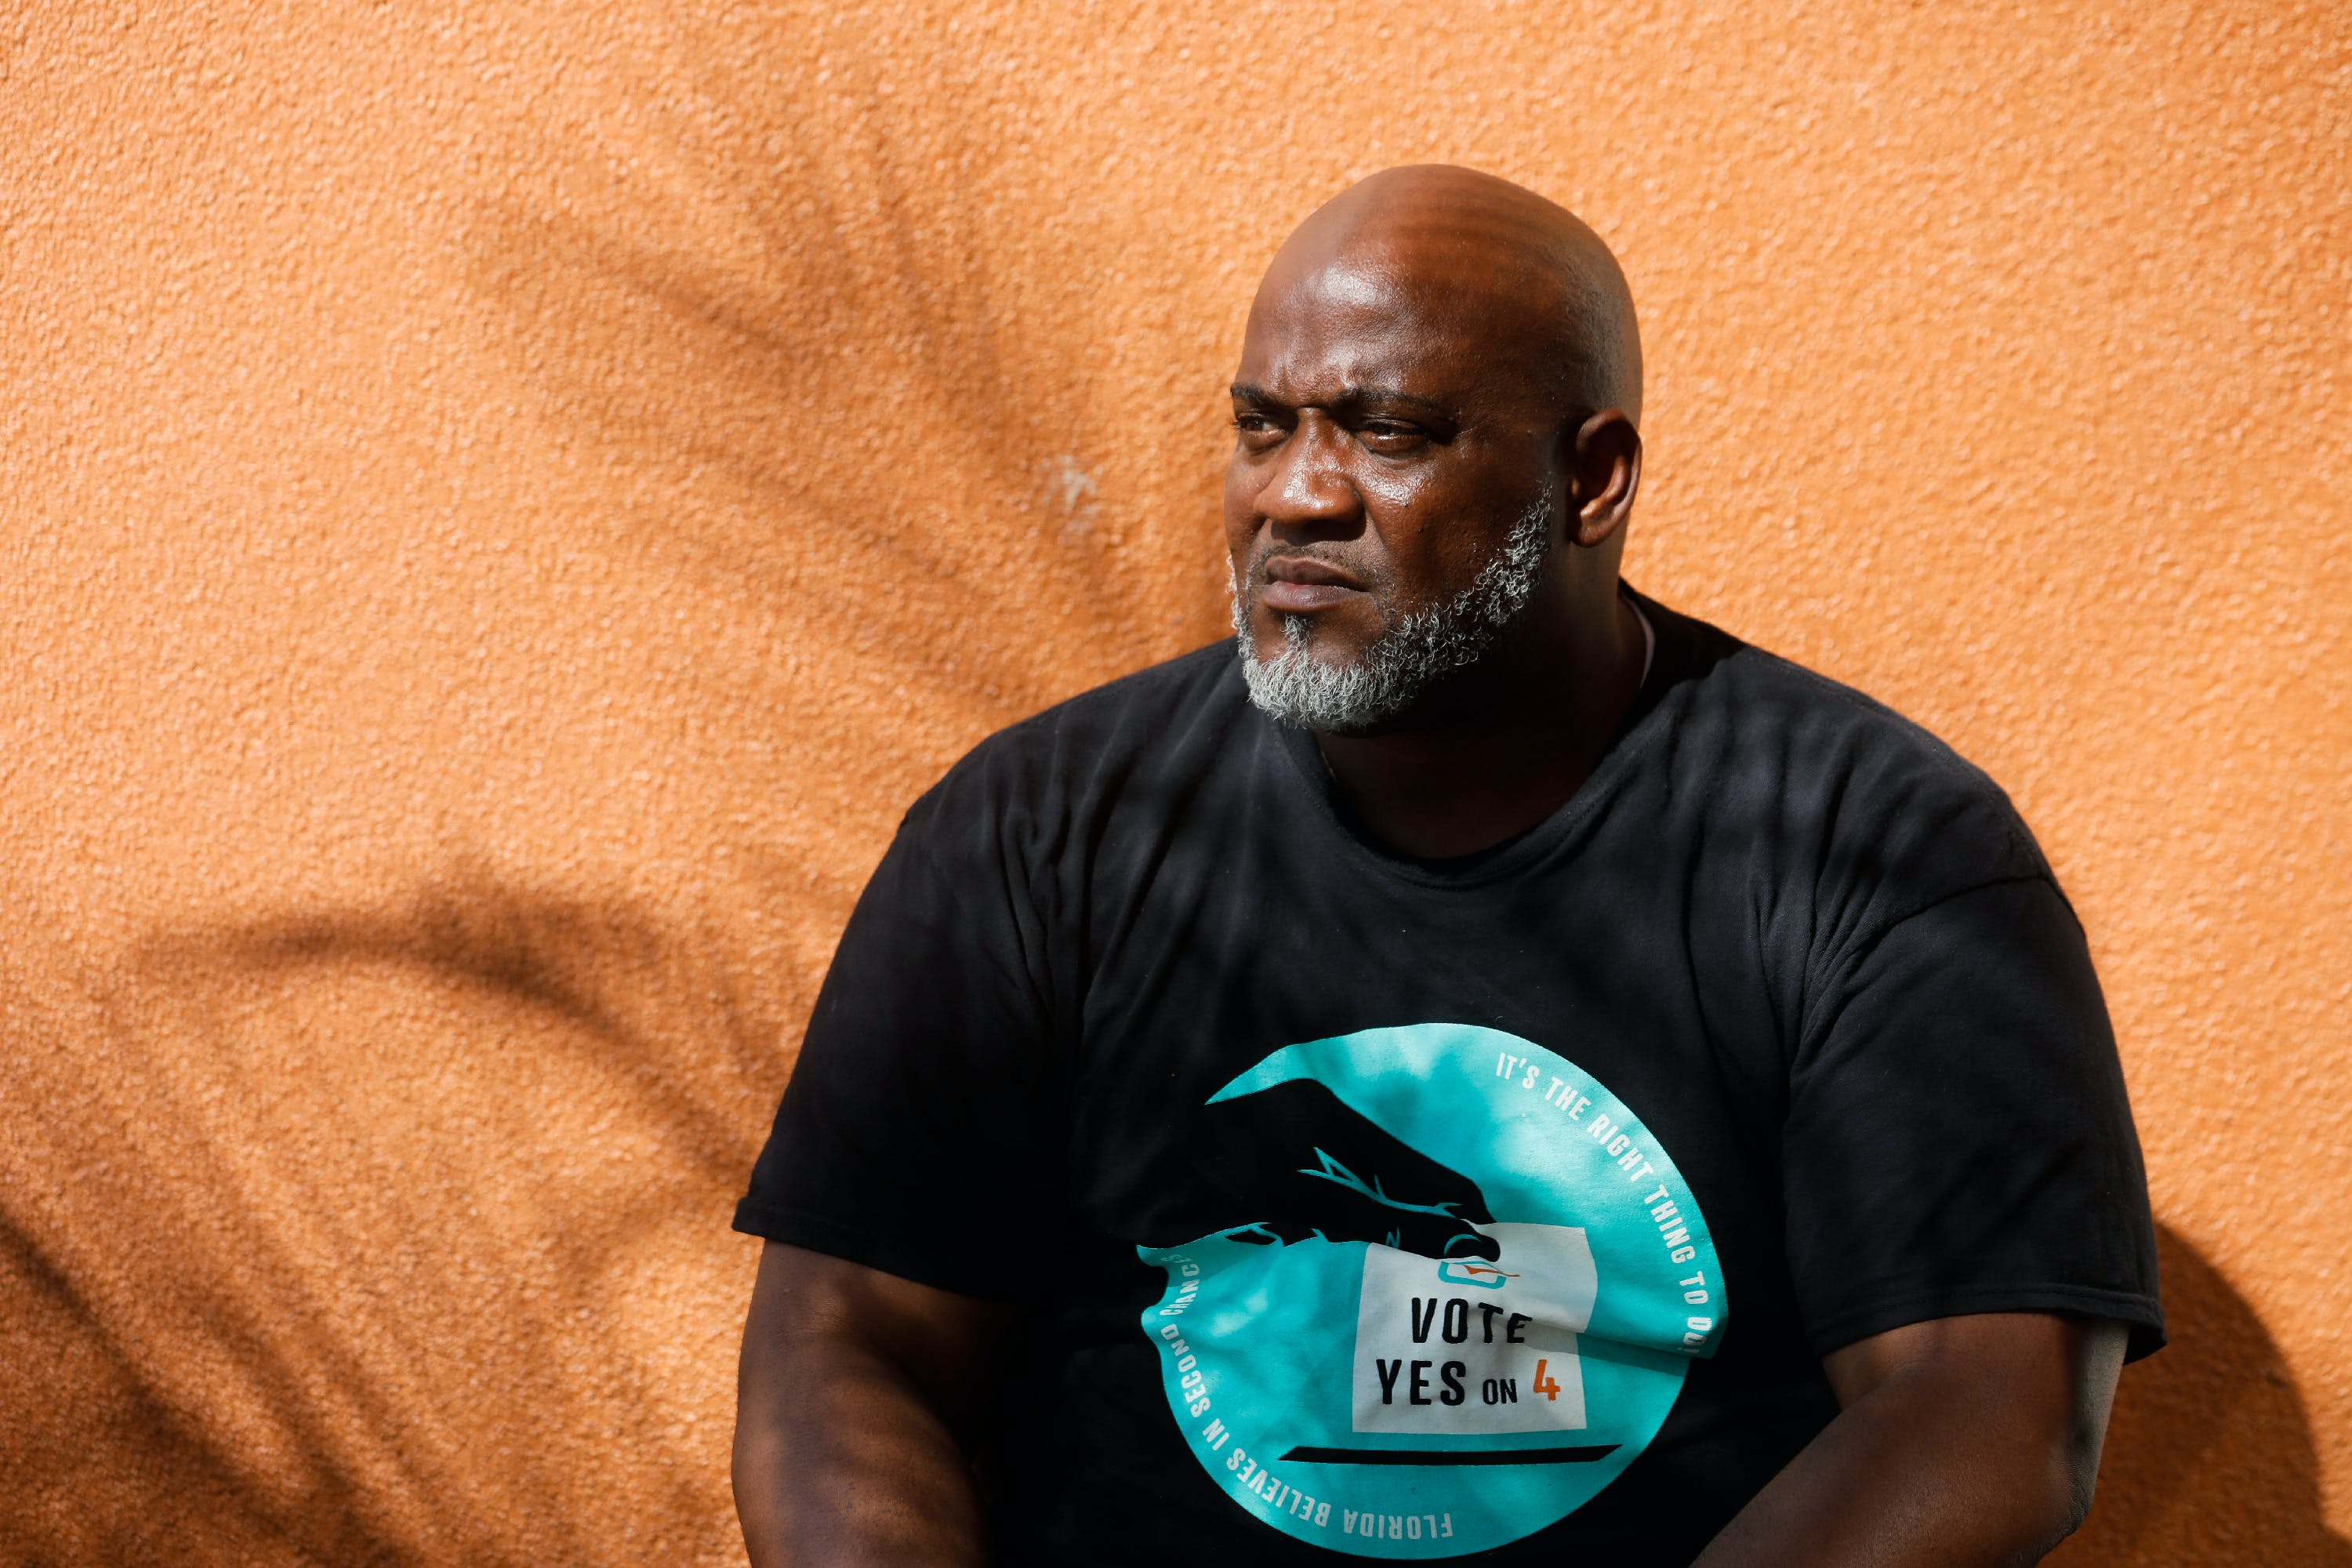 (from left to right) Desmond Meade poses for a portrait in Orlando on Monday, October 29, 2018. In the upcoming election on November 6, Floridians will have the opportunity to vote on Amendment 4, which would give people who have been convicted of a felony the restored right to vote. Credit: Eve Edelheit for The Intercept